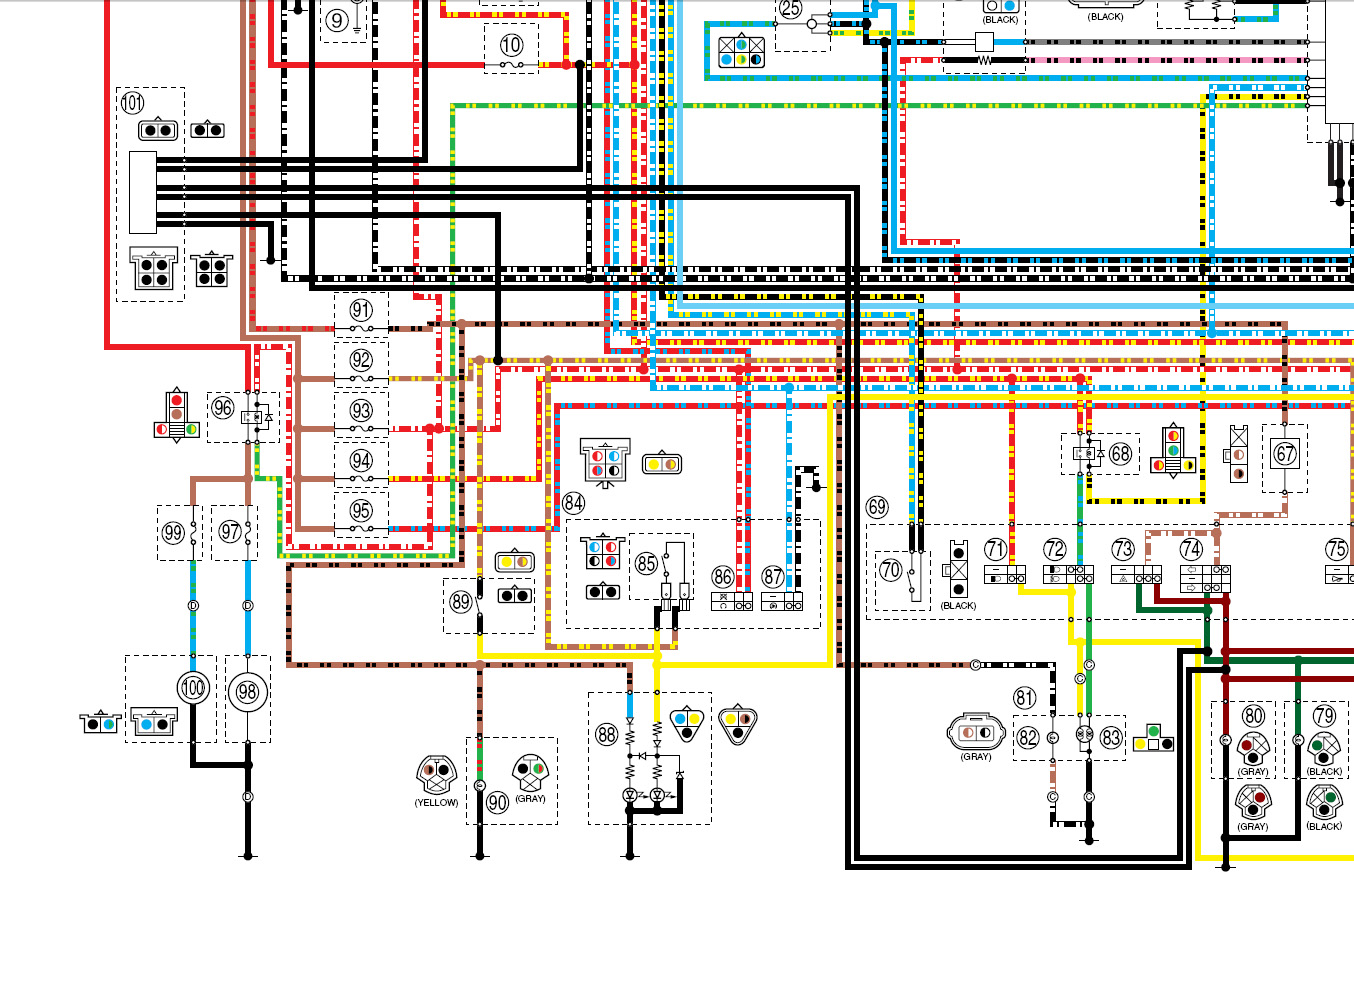 Wiring diagram yamaha scorpio z wire center photo 2 of 18 scorpio sr i600se on vmx17 rh imageevent com motorcycle wiring diagram yamaha 90 outboard wiring diagram ccuart Gallery